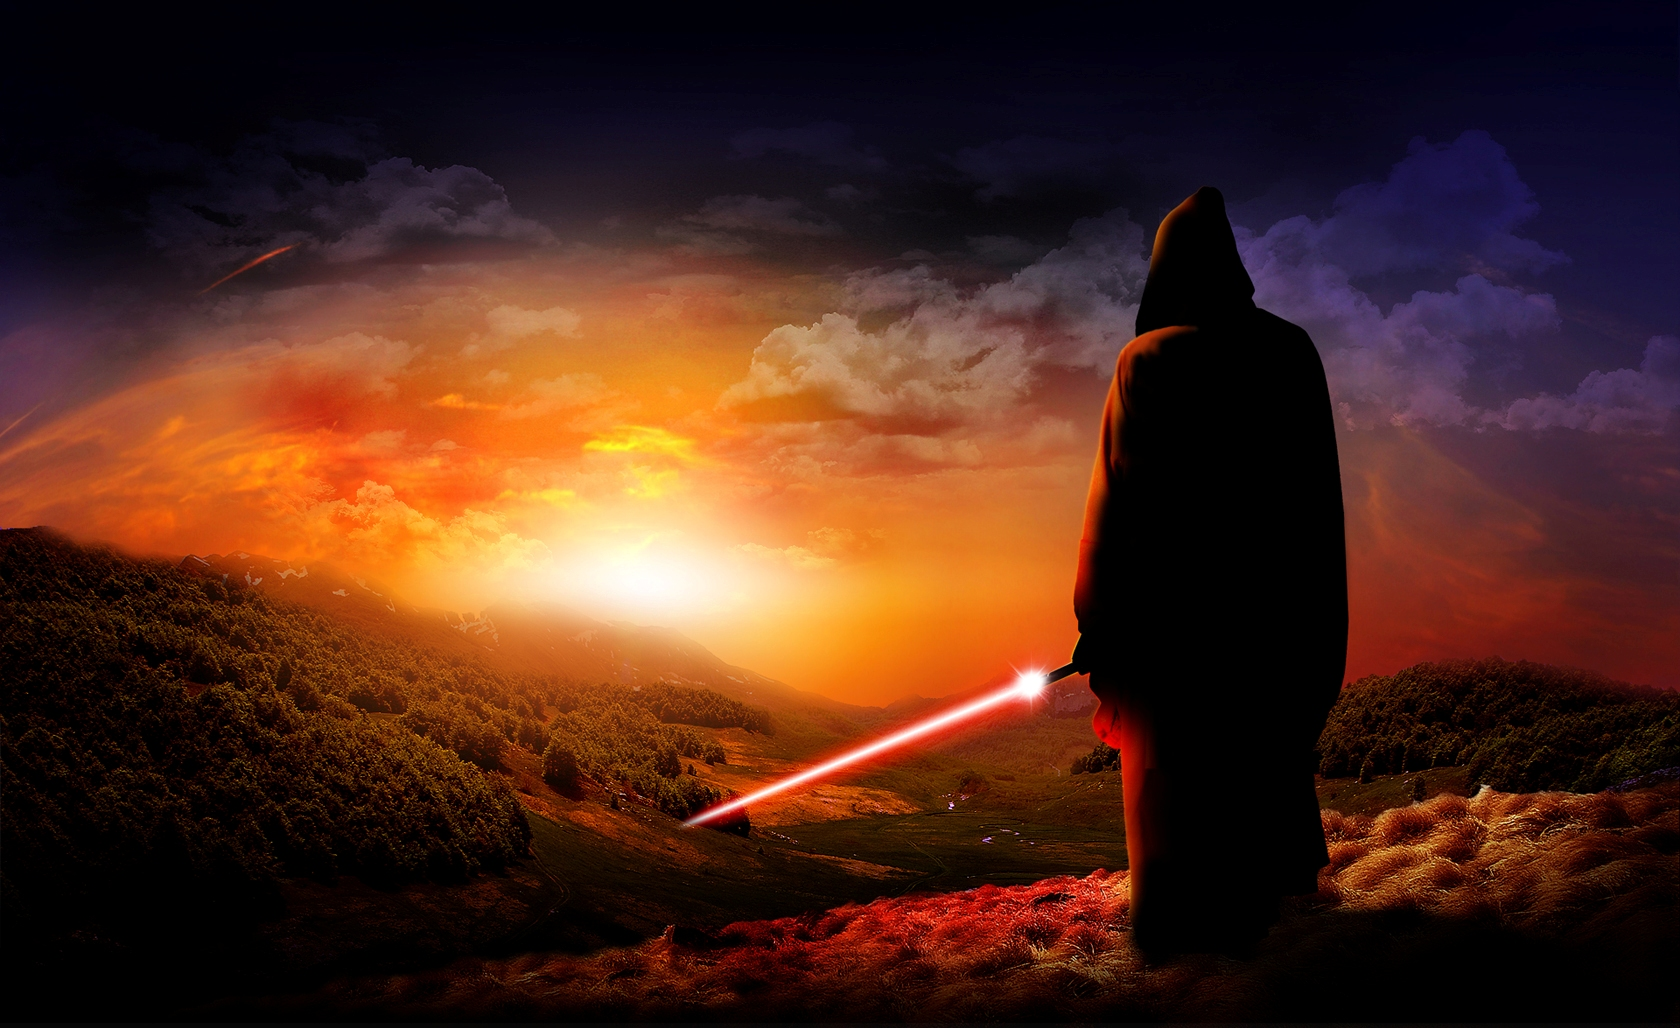 Star Wars Wallpapers sunrise